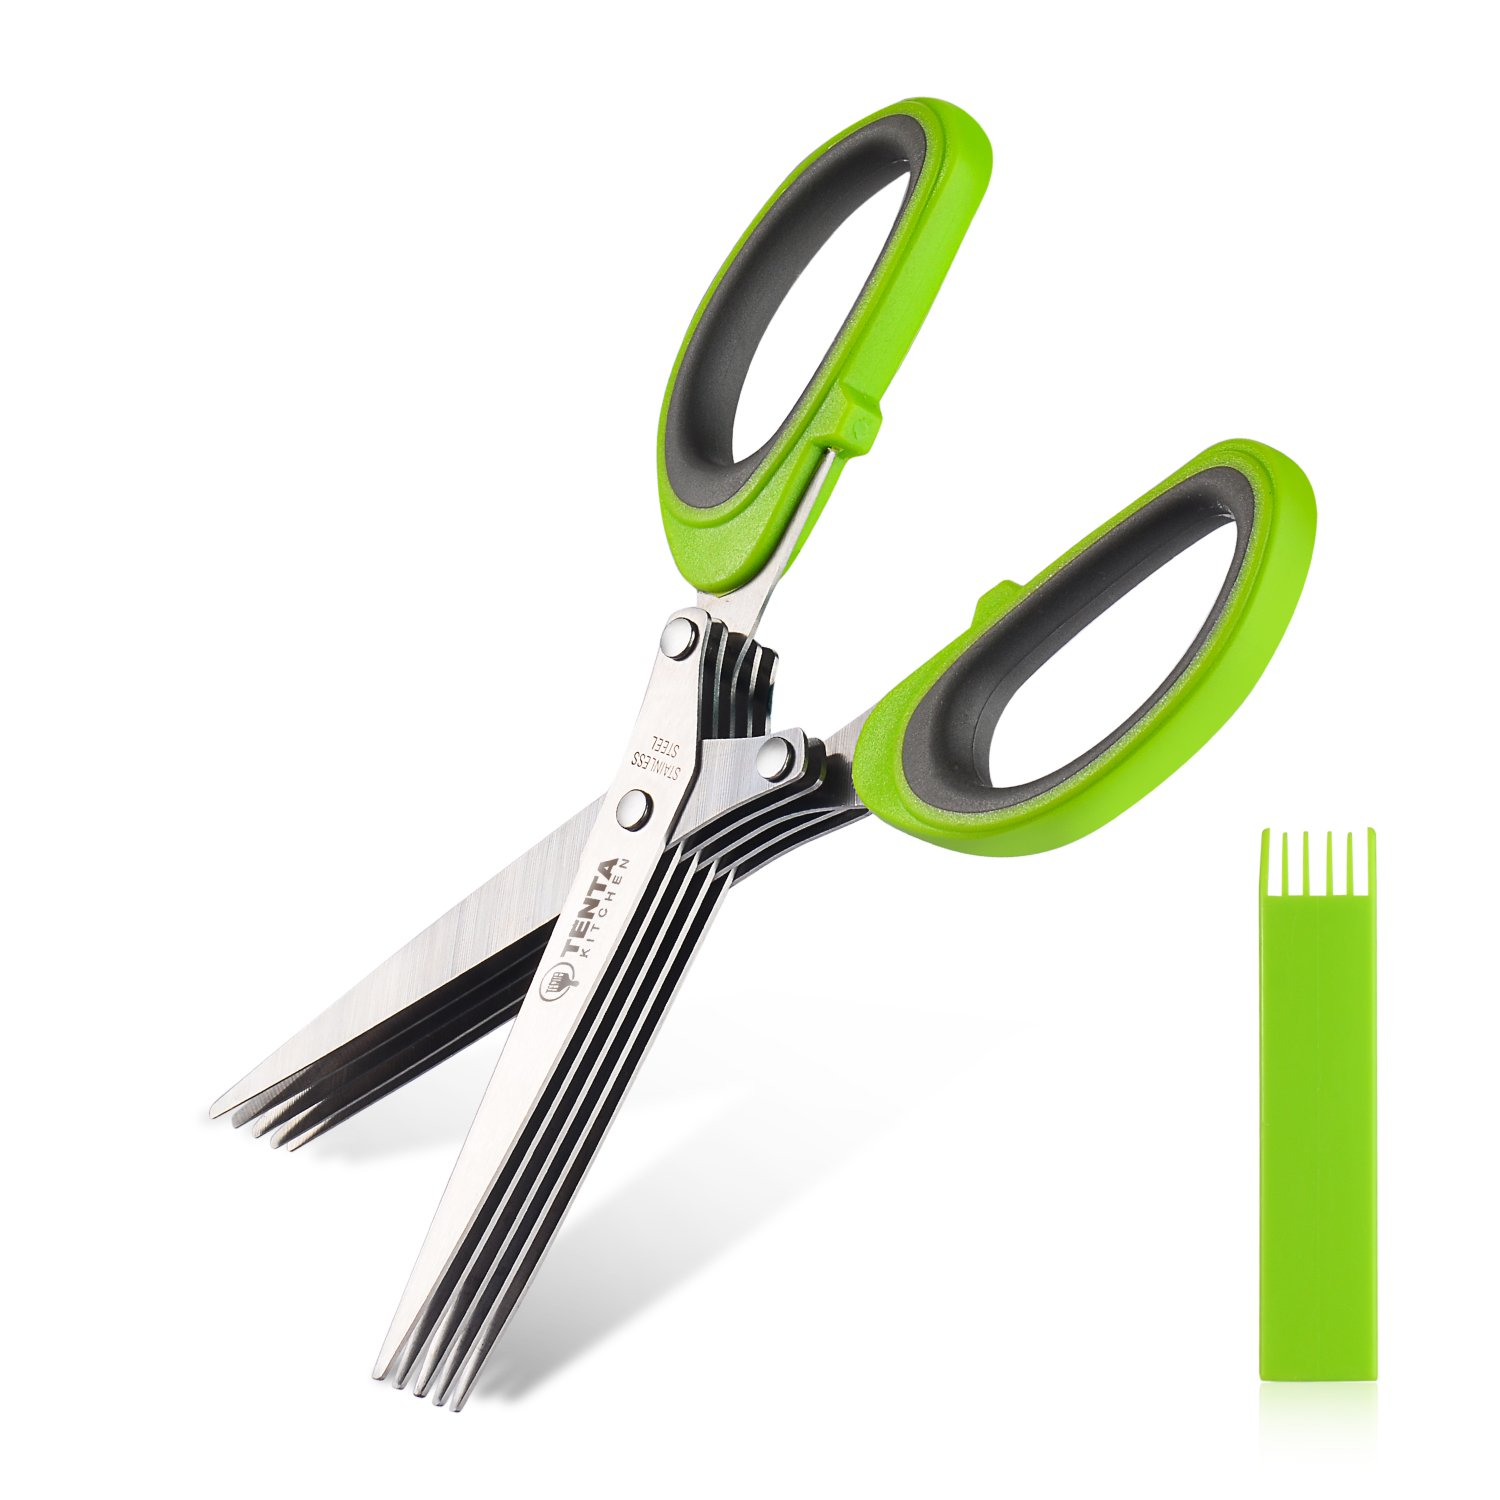 Tenta Kitchen Durable 5 Blade Herb Scissors with Cleaning Comb Cover| Time-saving Kitchen Shears Chop Herbs Fast | -Strong Plastic Lined with Silicone Handle -For Your Kitchen or Garden (N0.1 TENTA7 T039